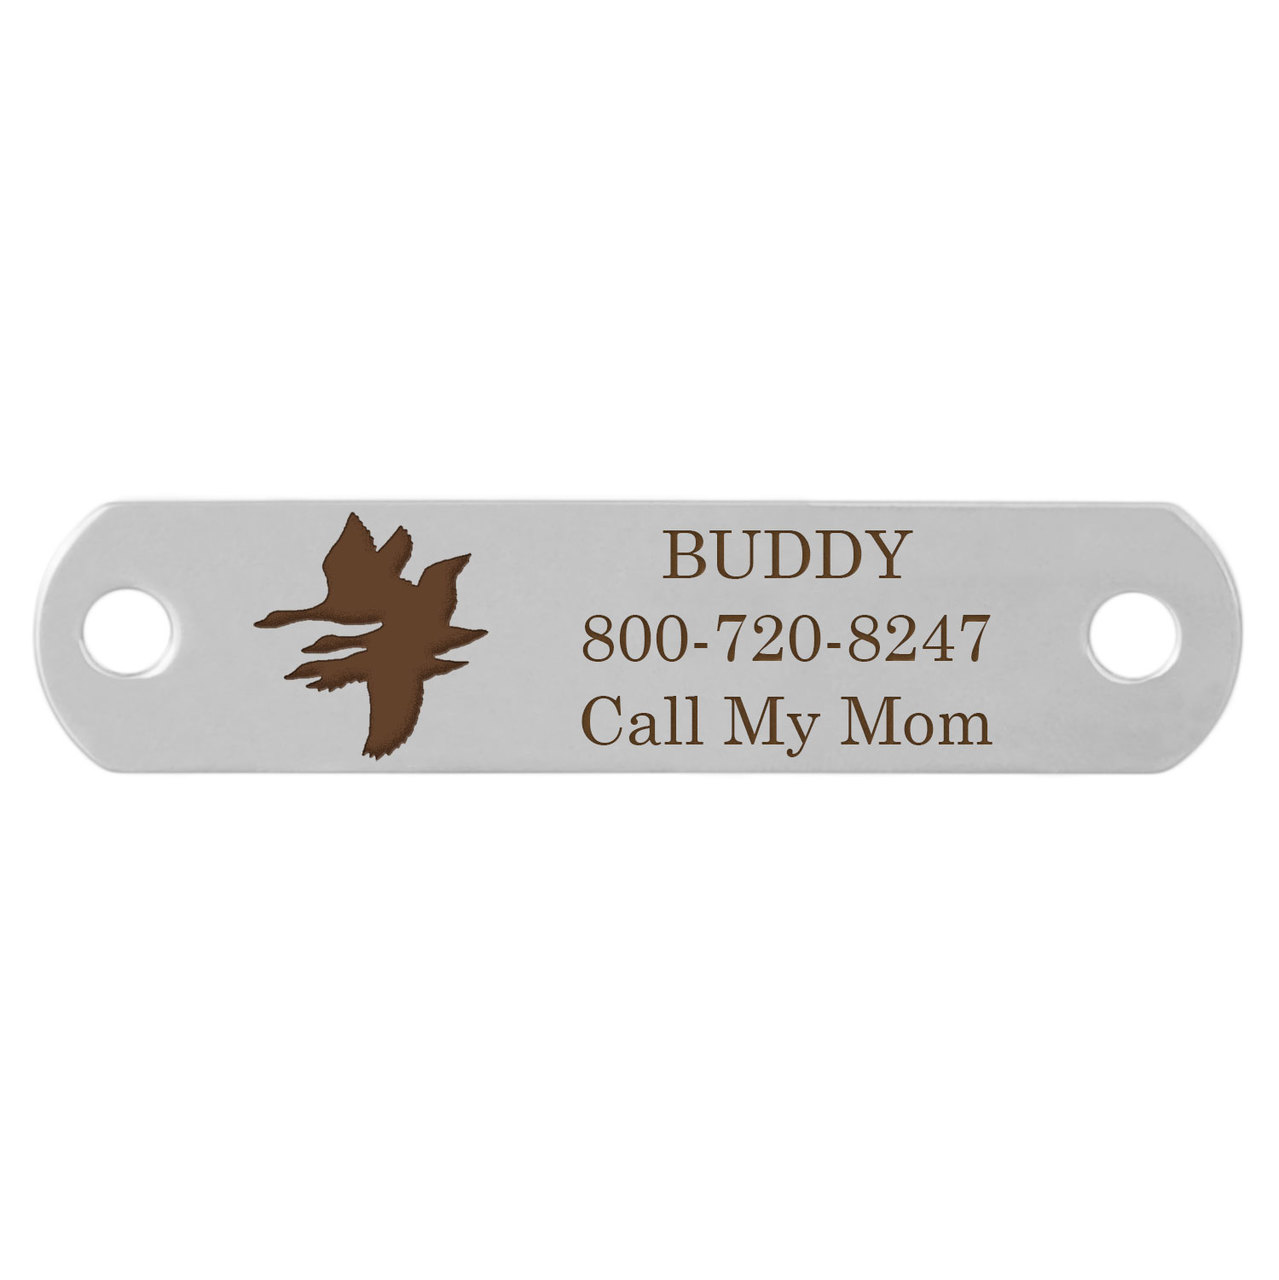 Sport Dog Rivet-On Dog Collar Name Plate Stainless Steel Geese Flying